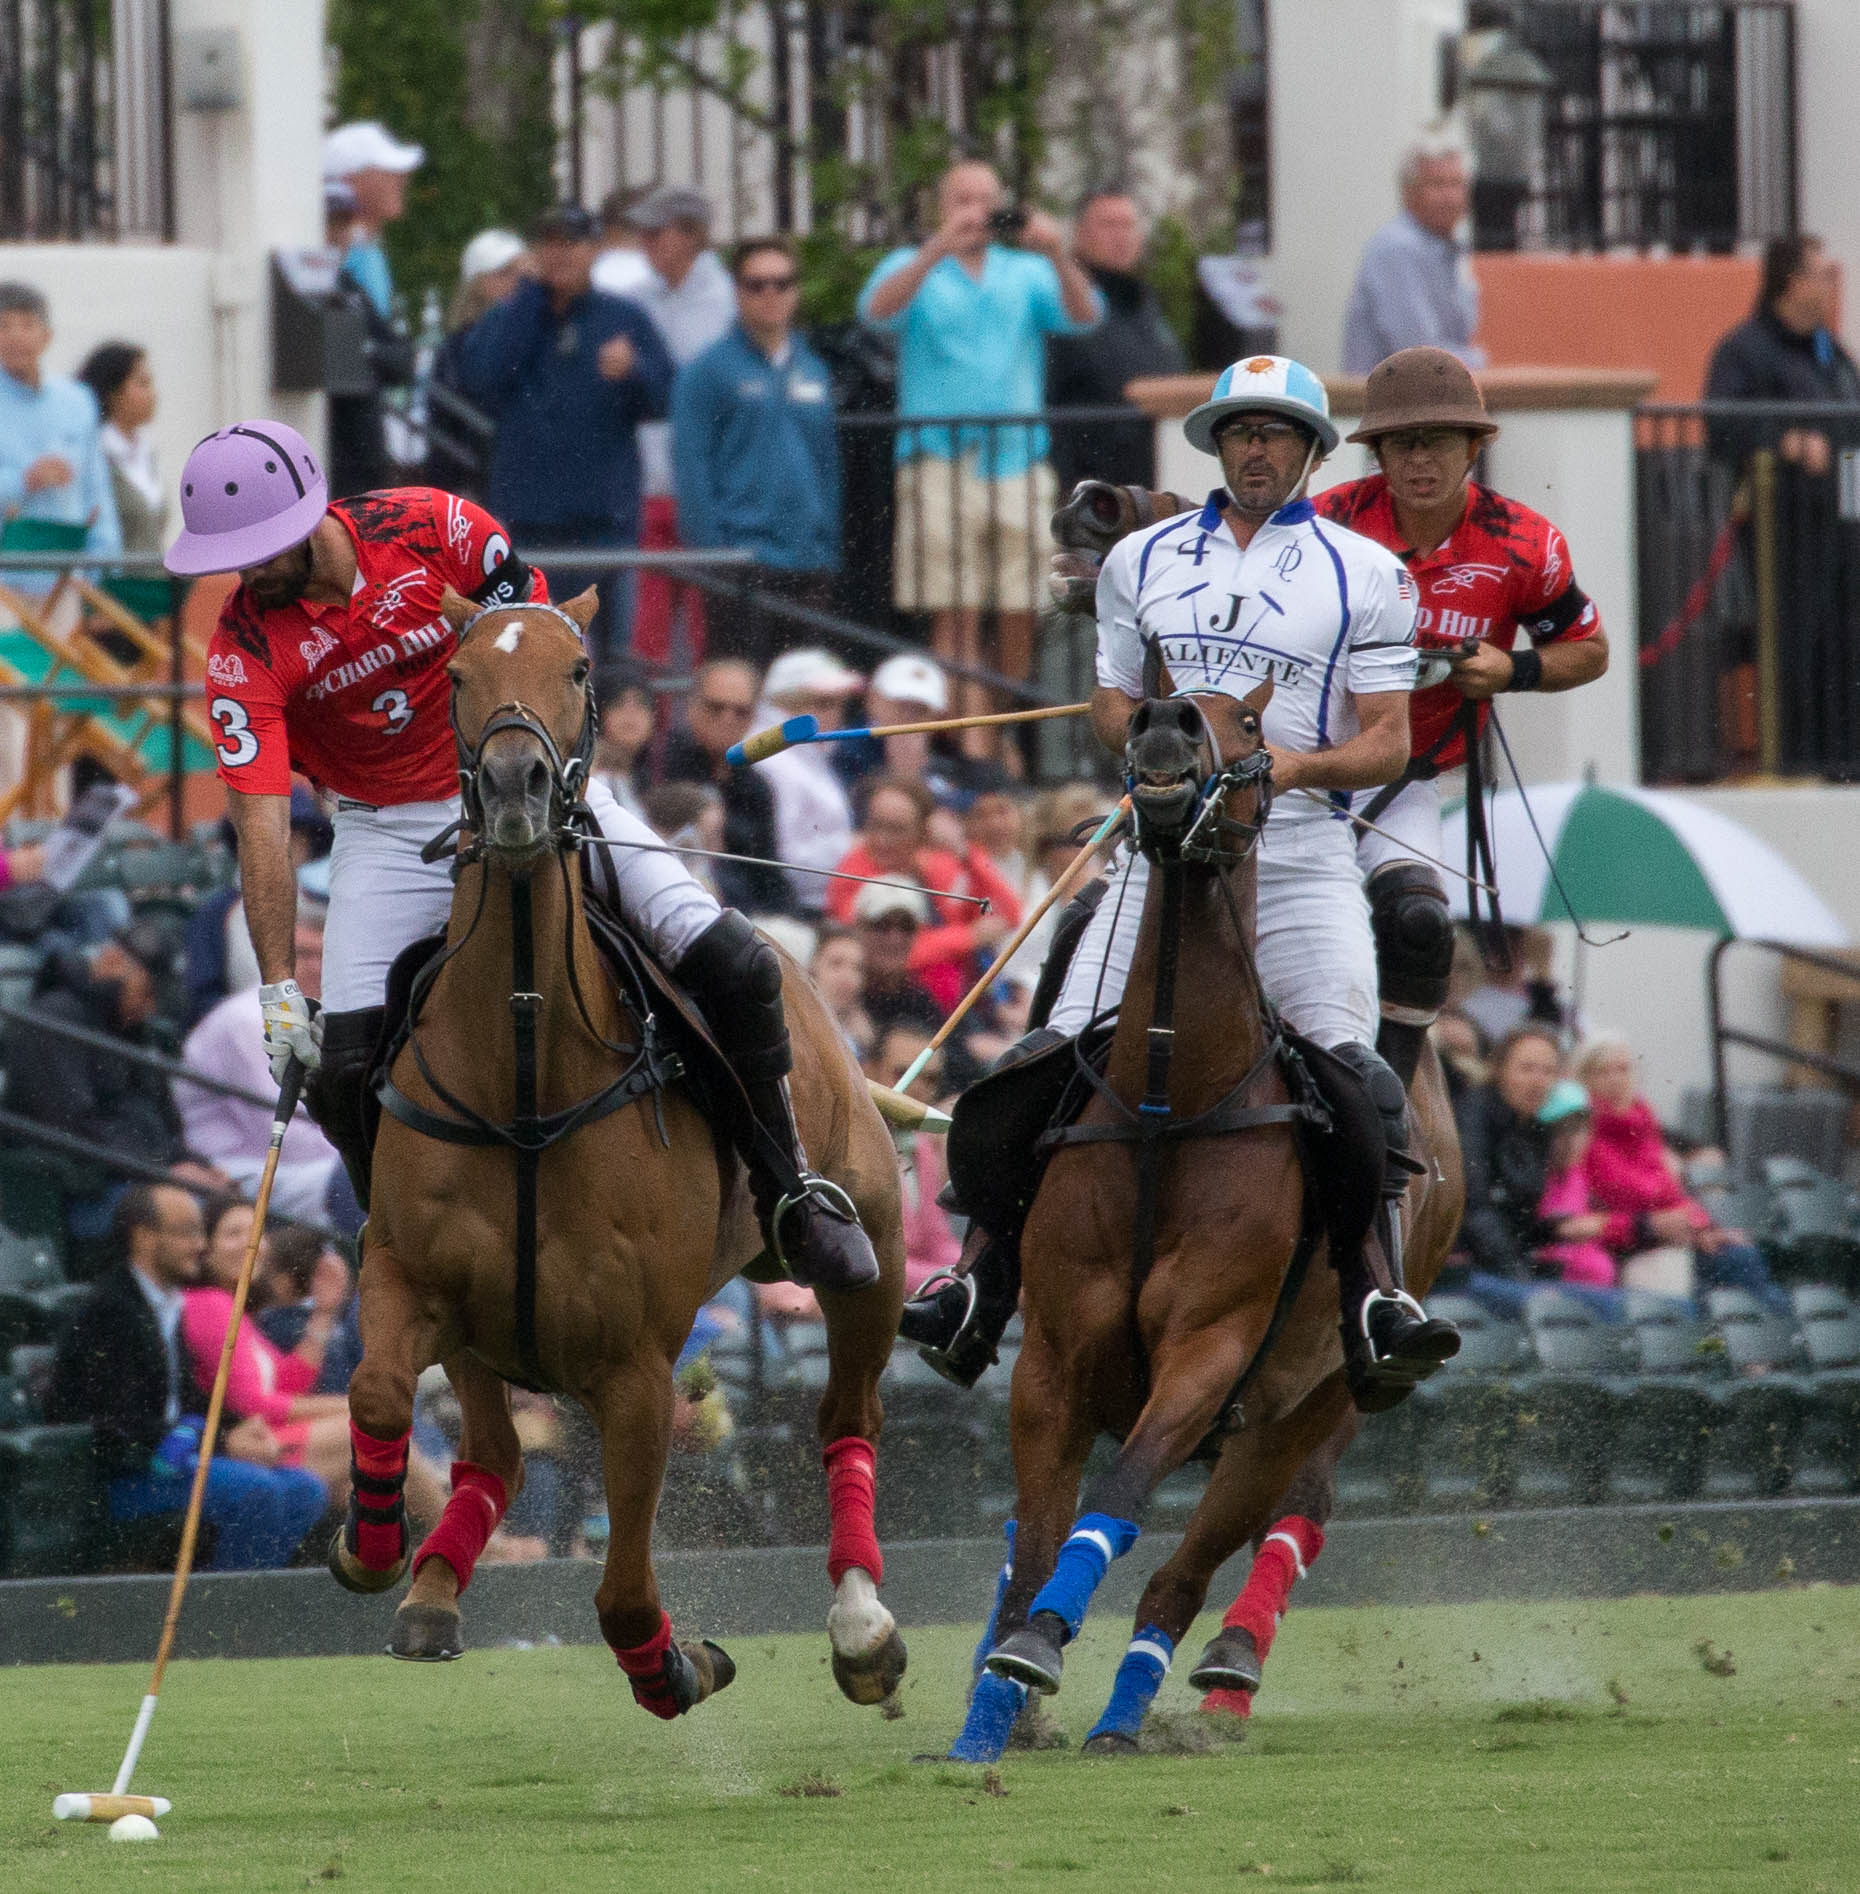 2017 US OPEN POLO